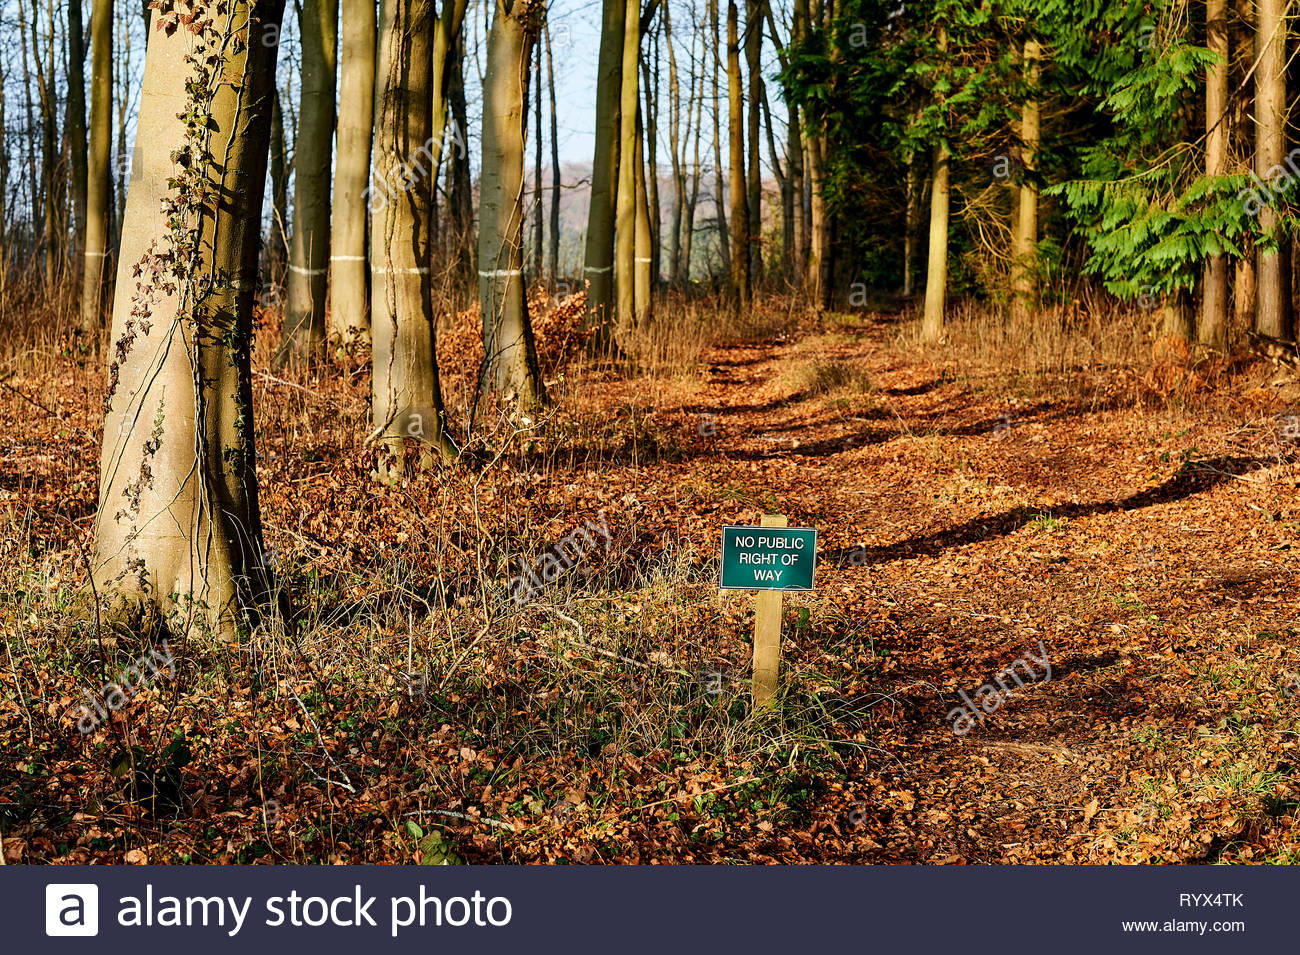 No Public right of way sign in a forest in Stonesfield in Oxfordshire in the Cotswolds - Stock Image